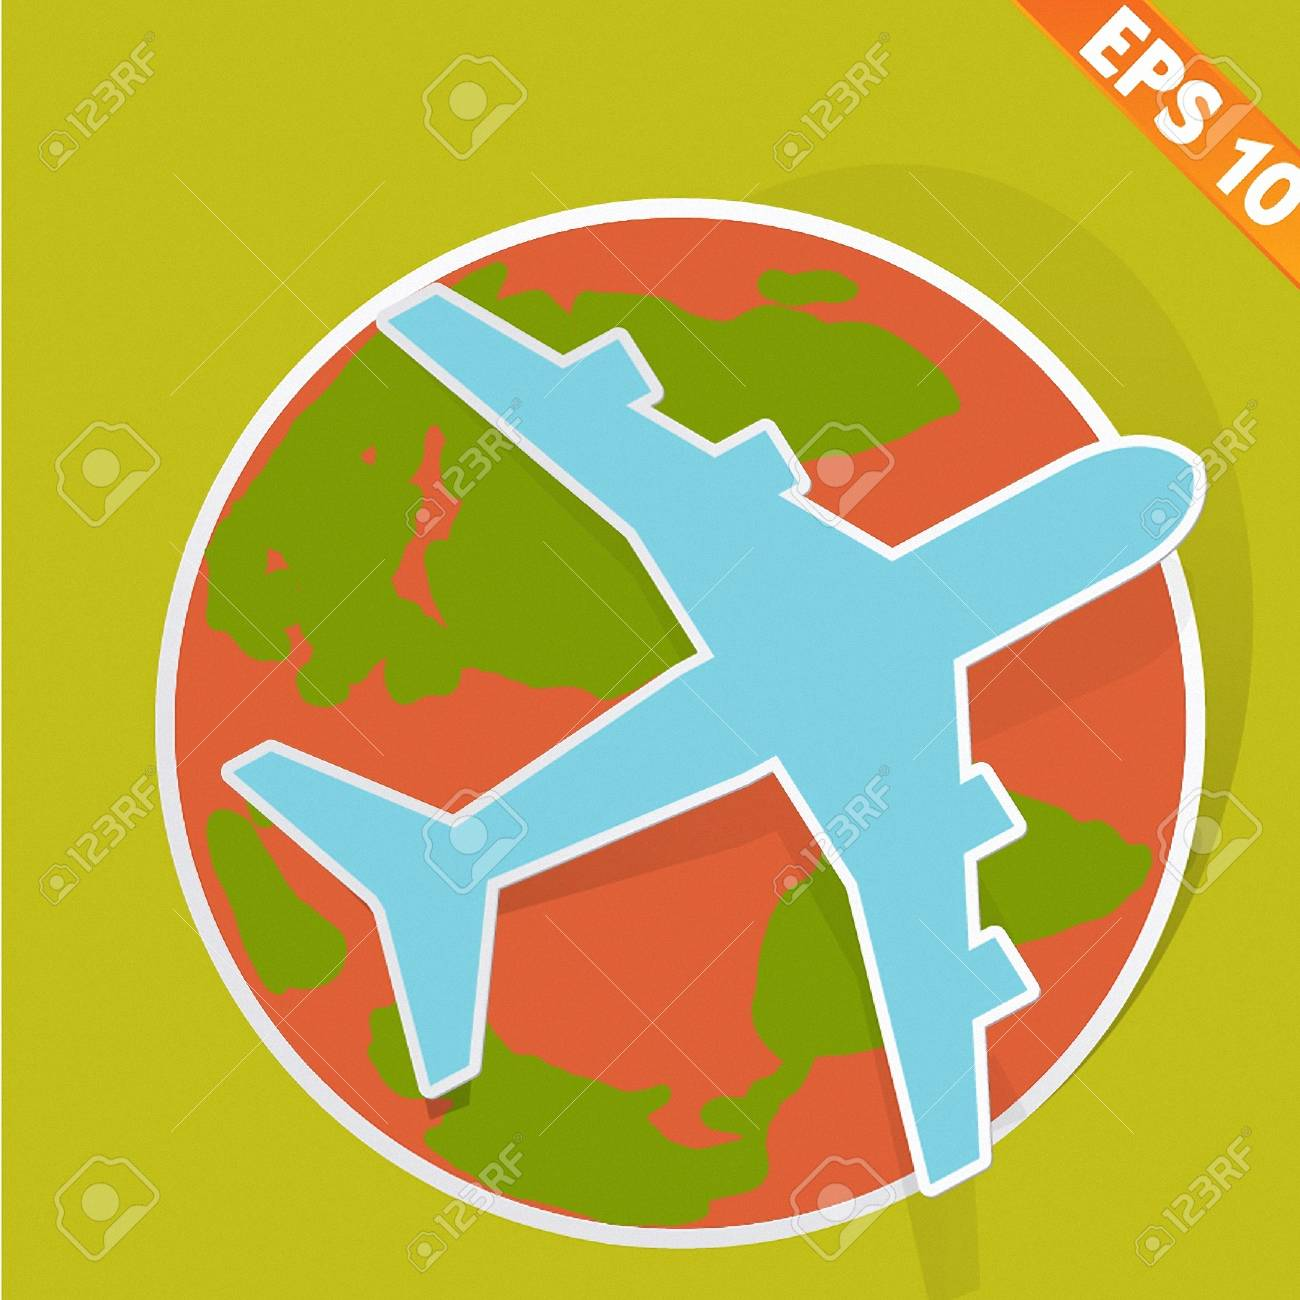 Airplane travel - Vector illustration Stock Vector - 20896059